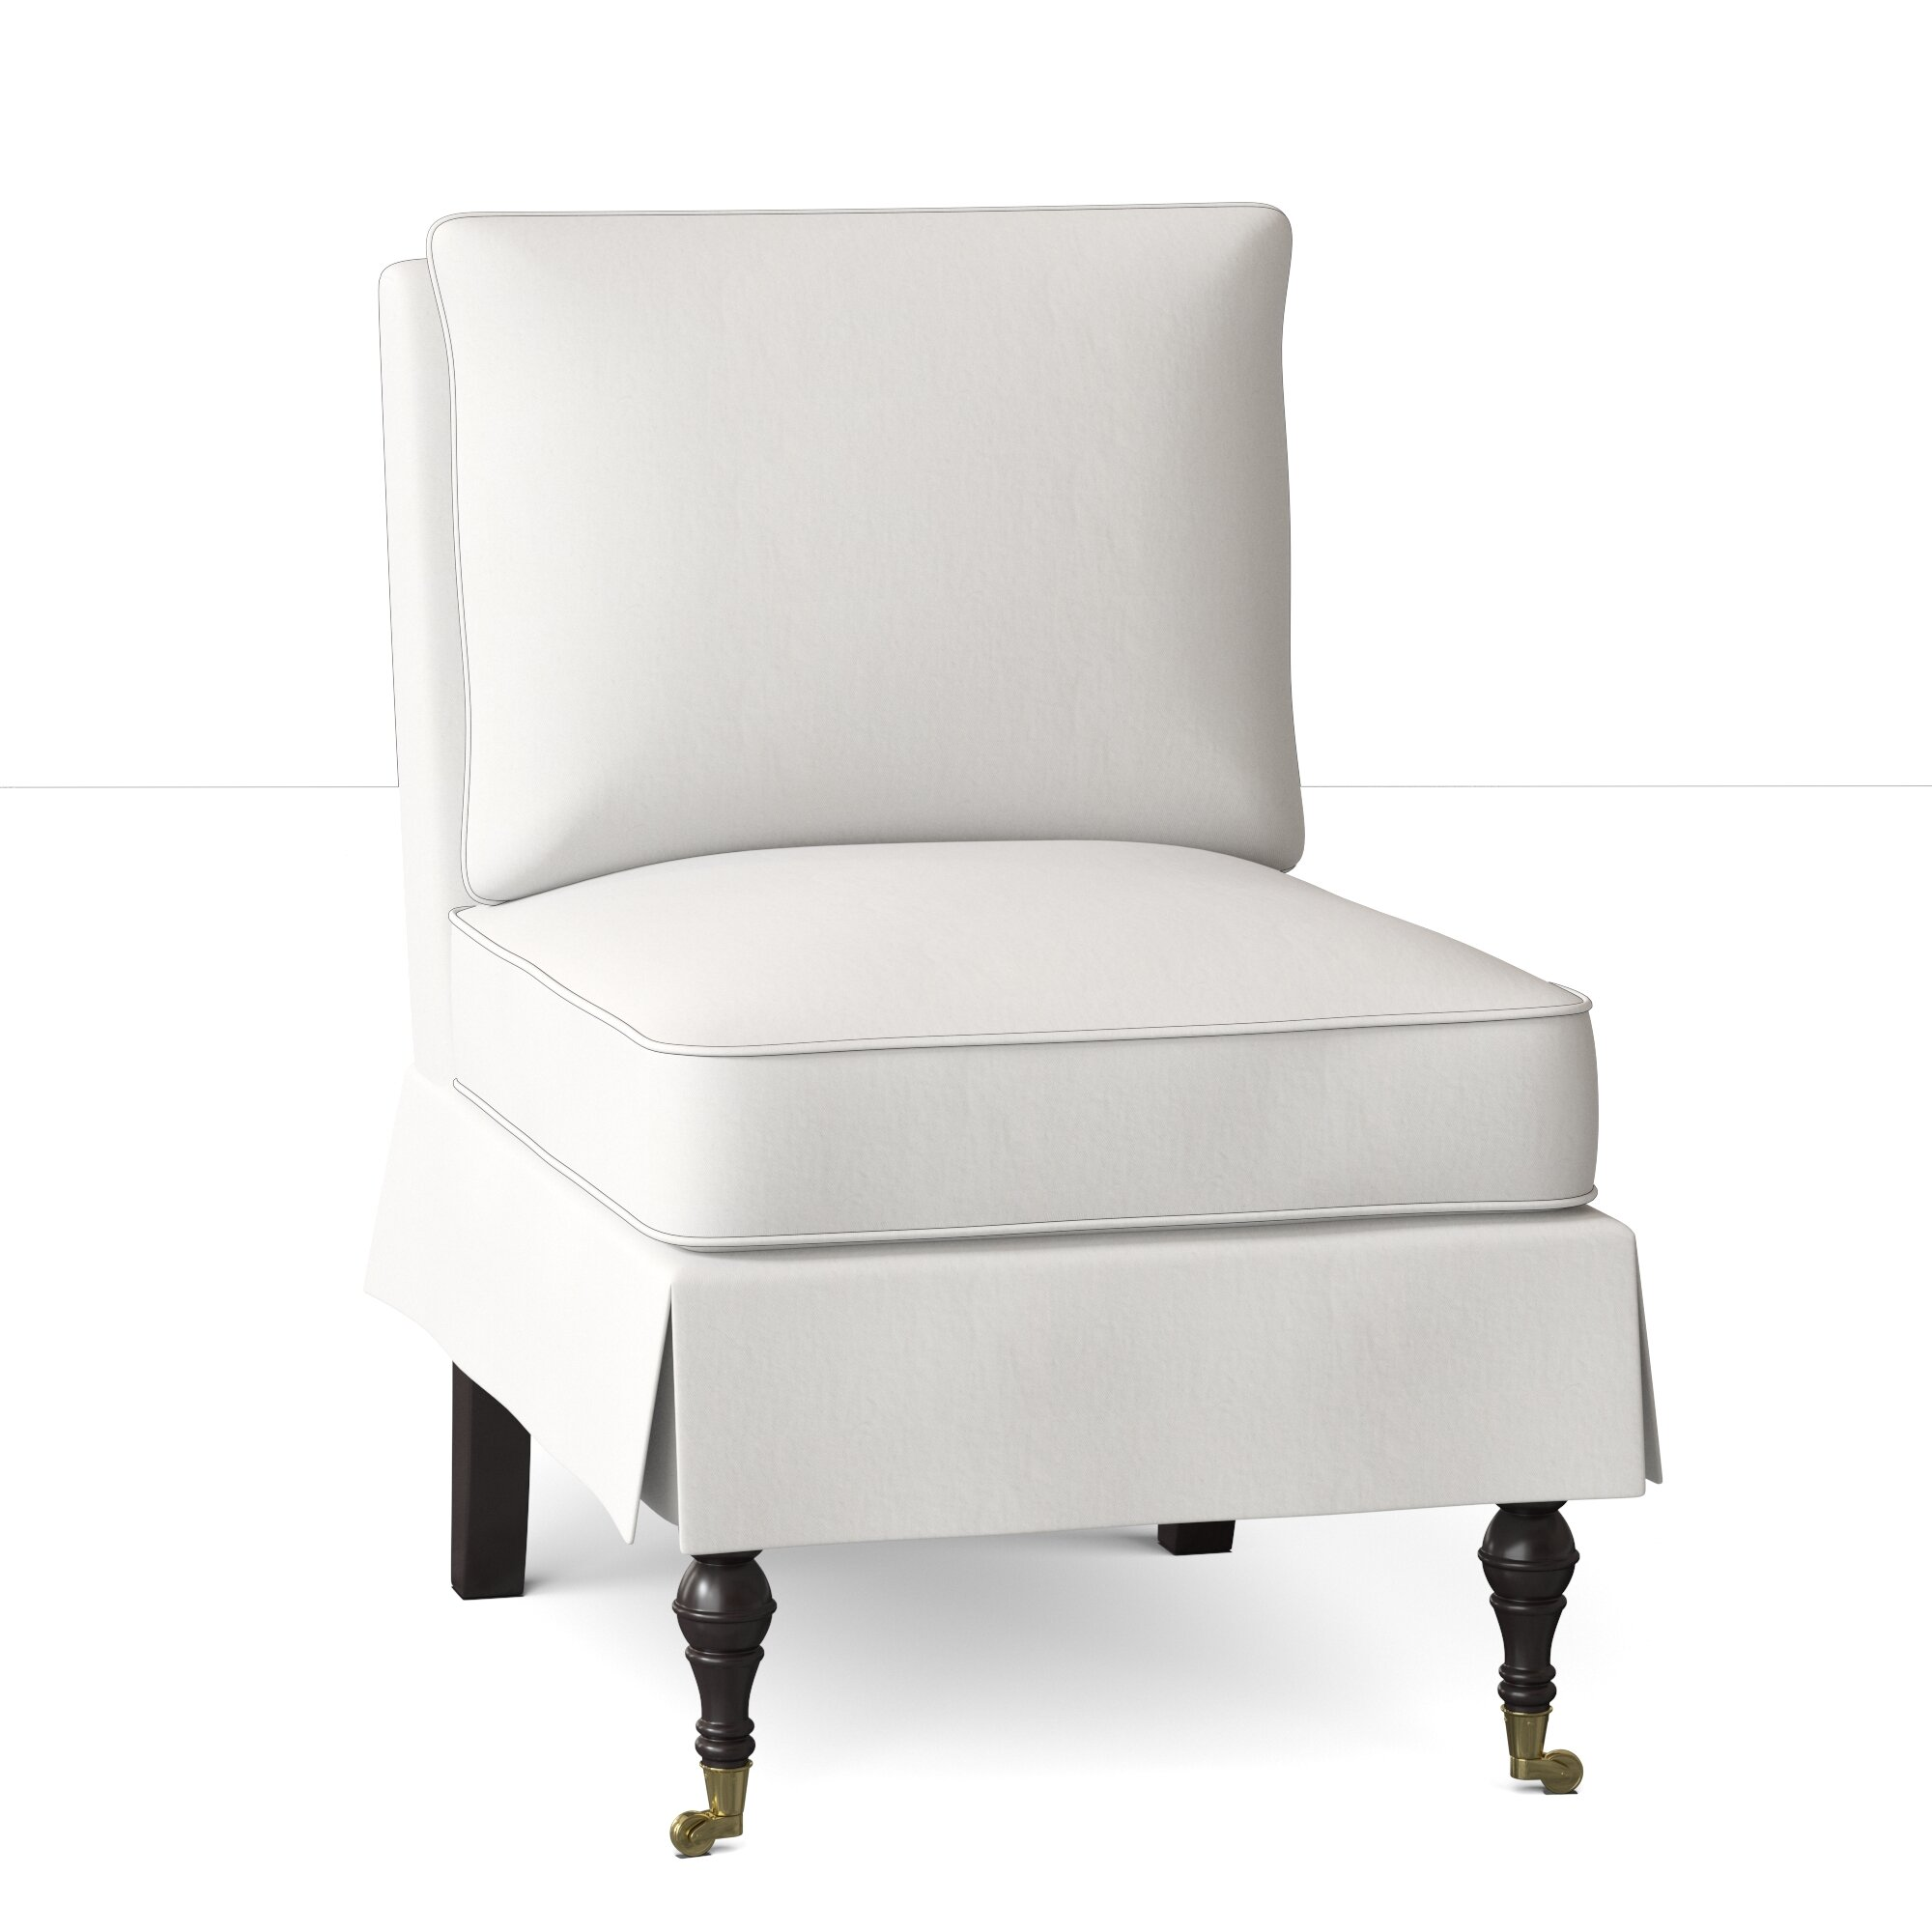 Picture of: Wayfair Custom Upholstery Dana 24 W Tufted Polyester Blend Down Cushion Slipper Chair Reviews